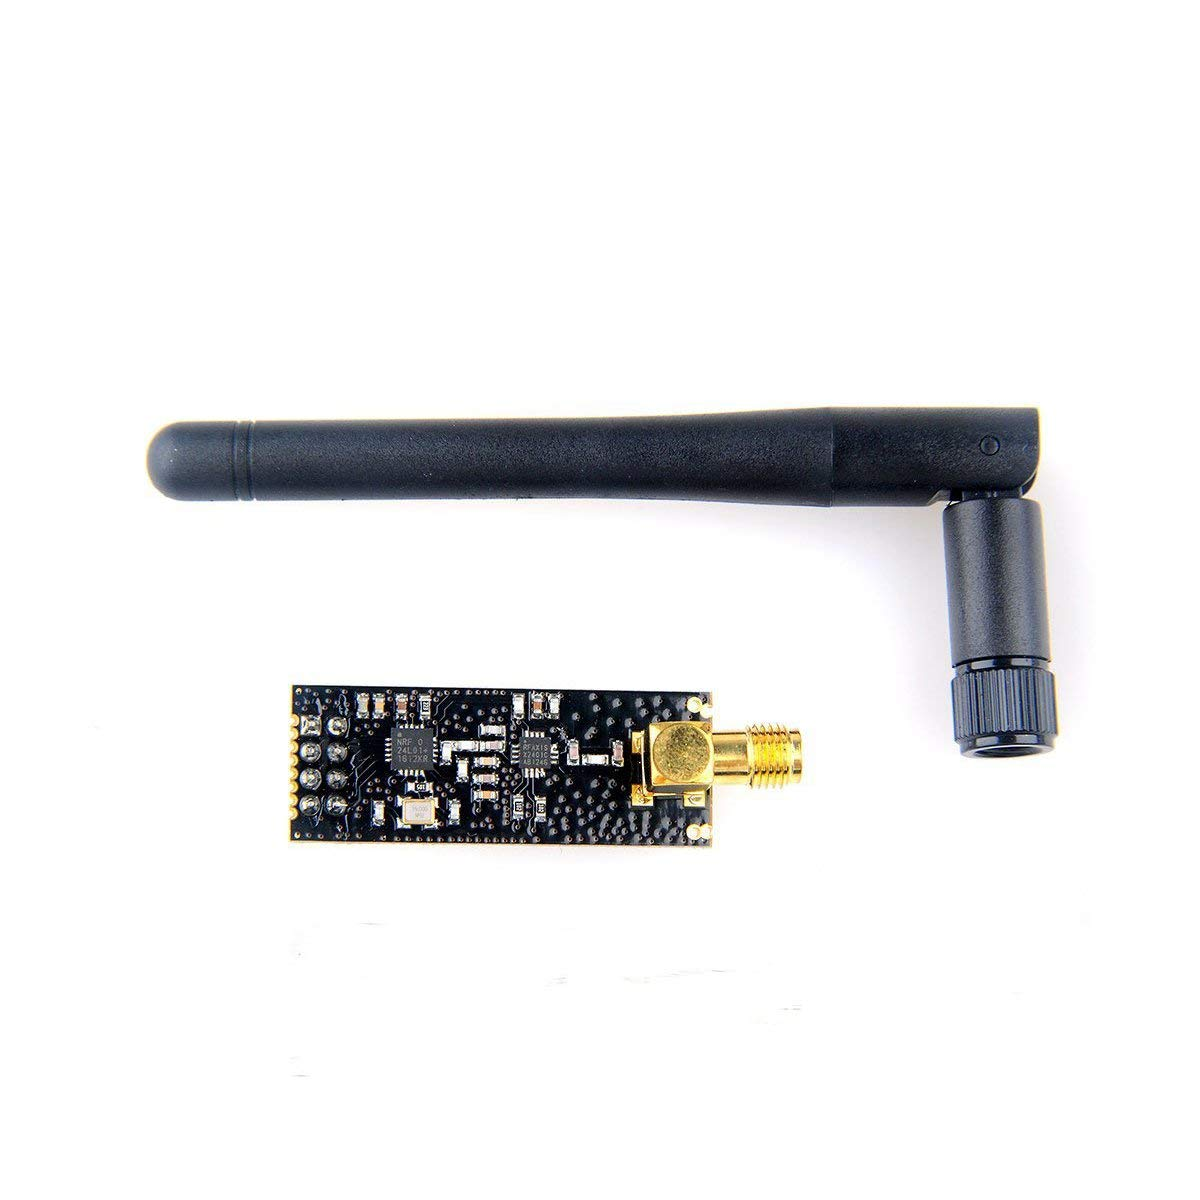 2.4G 1100 Meters Long Distance NRF24L01+PA+LNA Wireless Module with Antenna